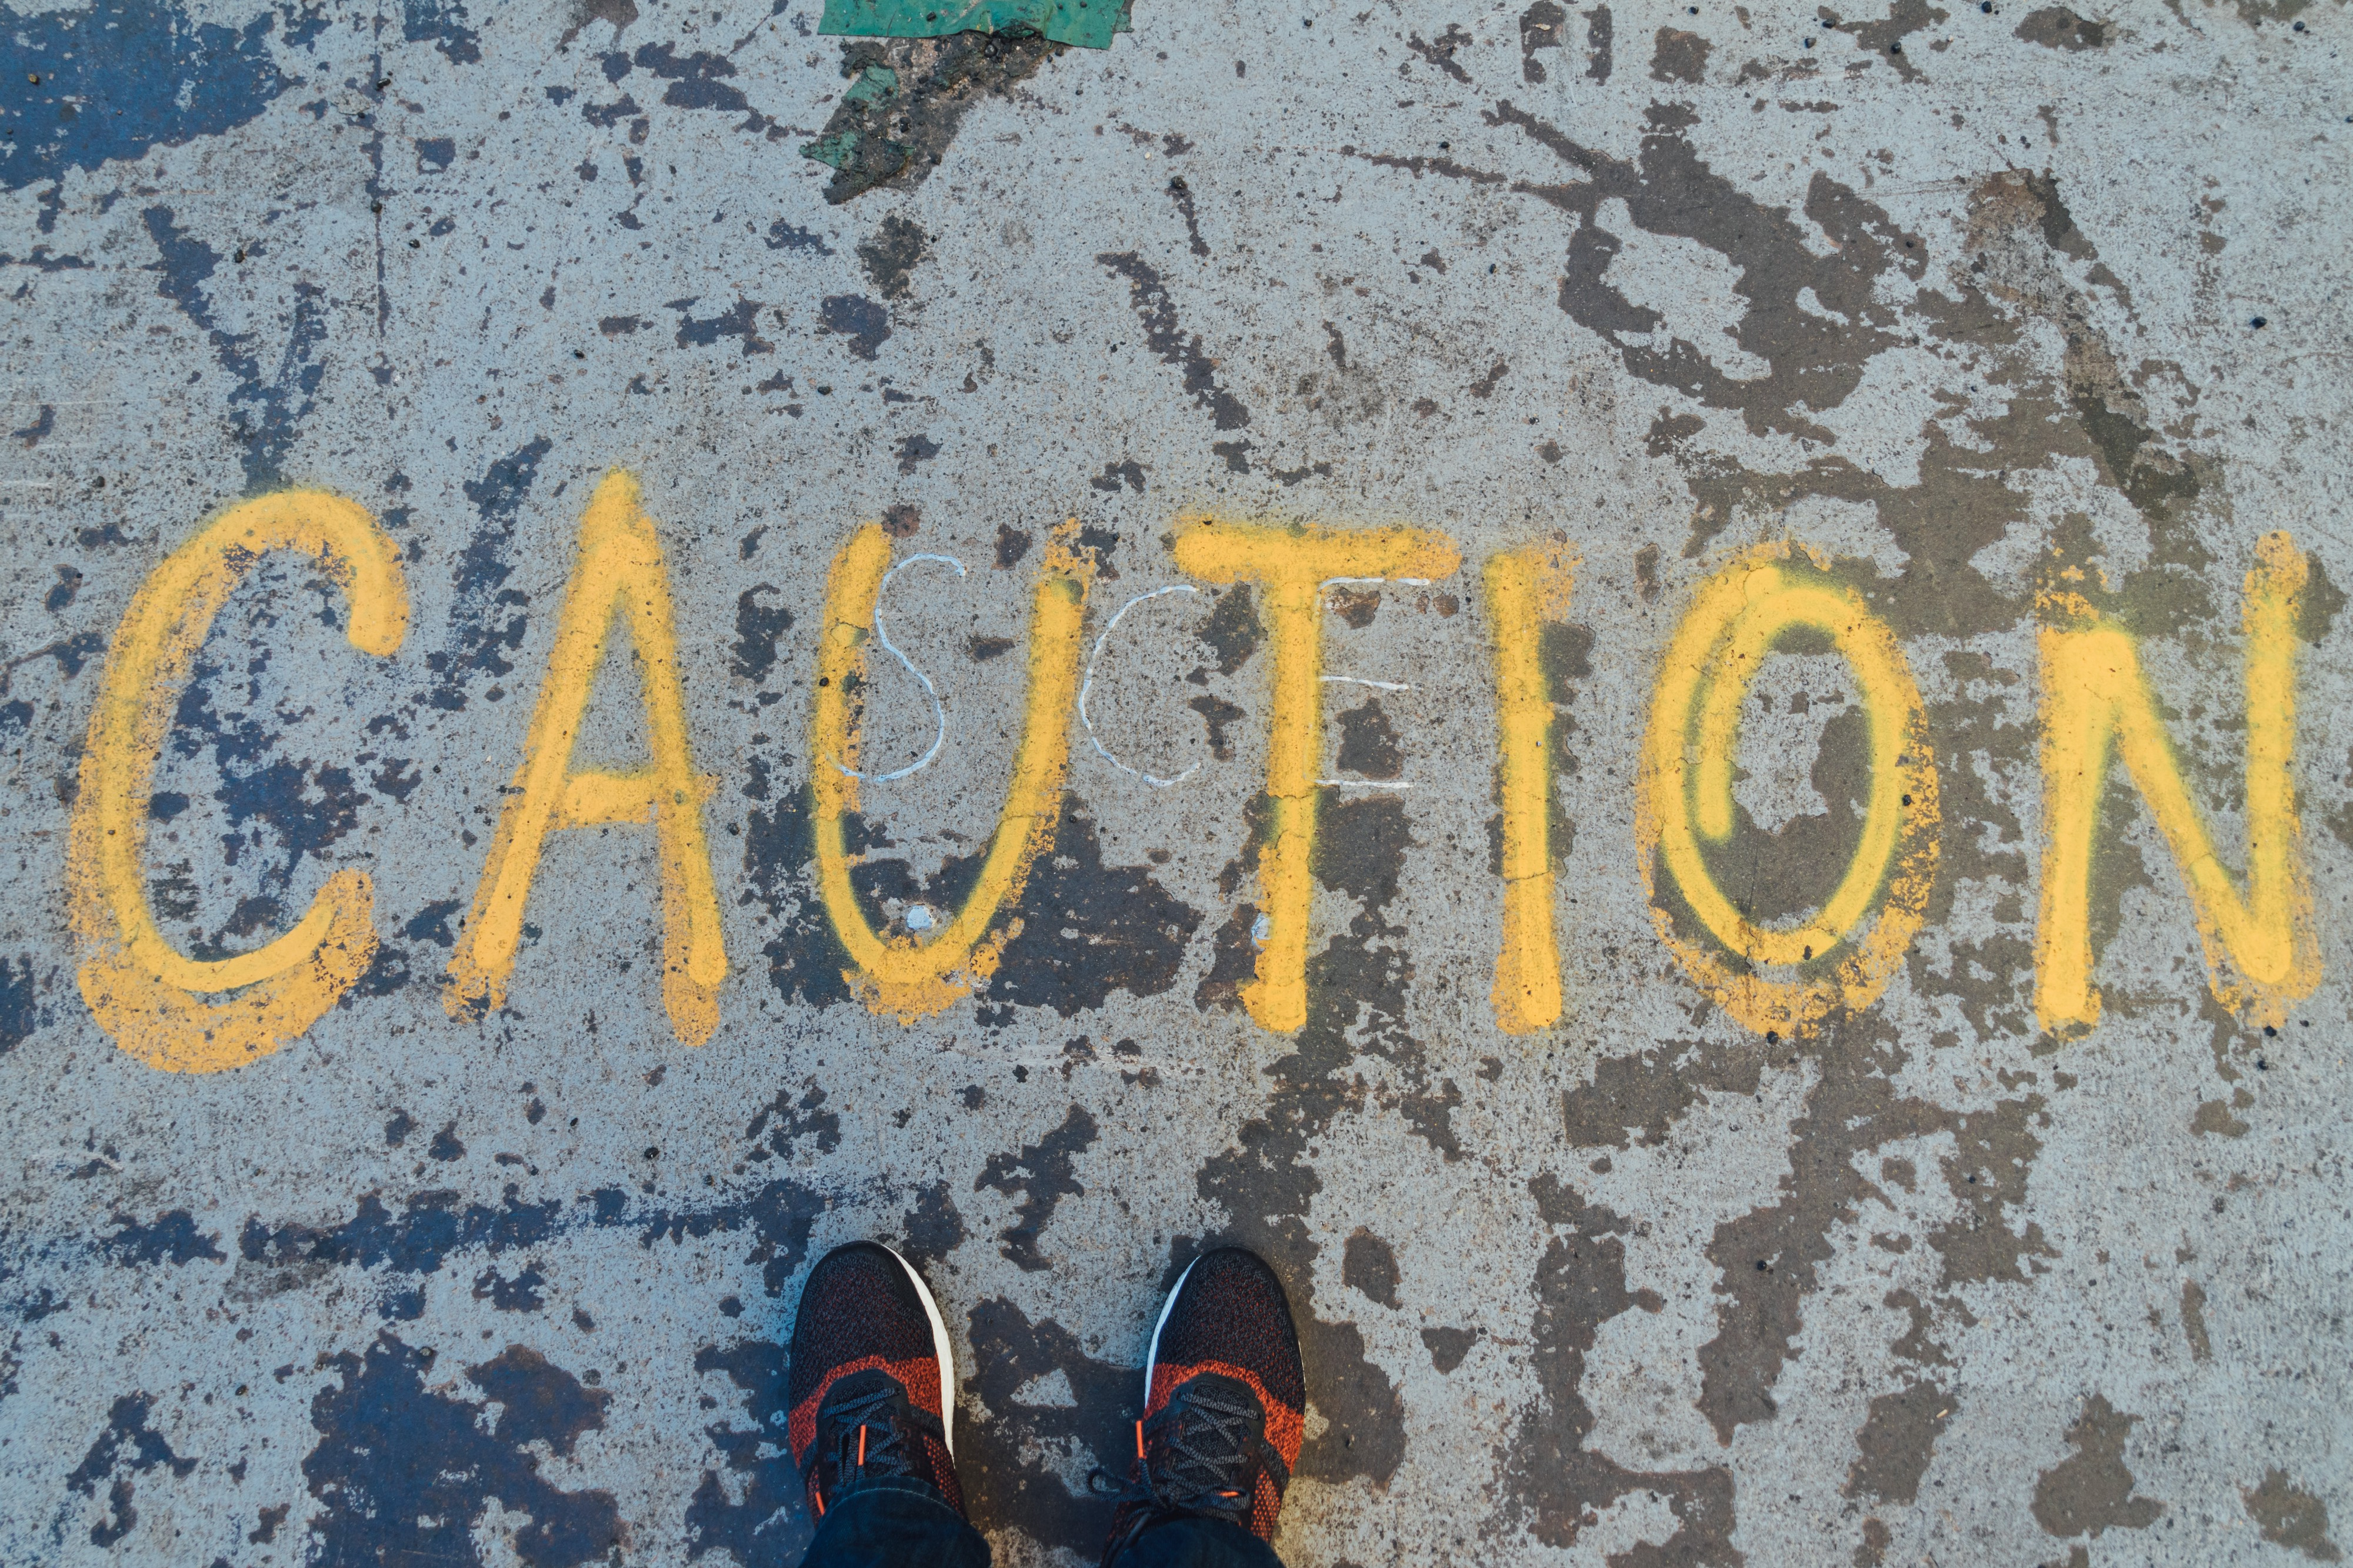 CAUTION written in paint